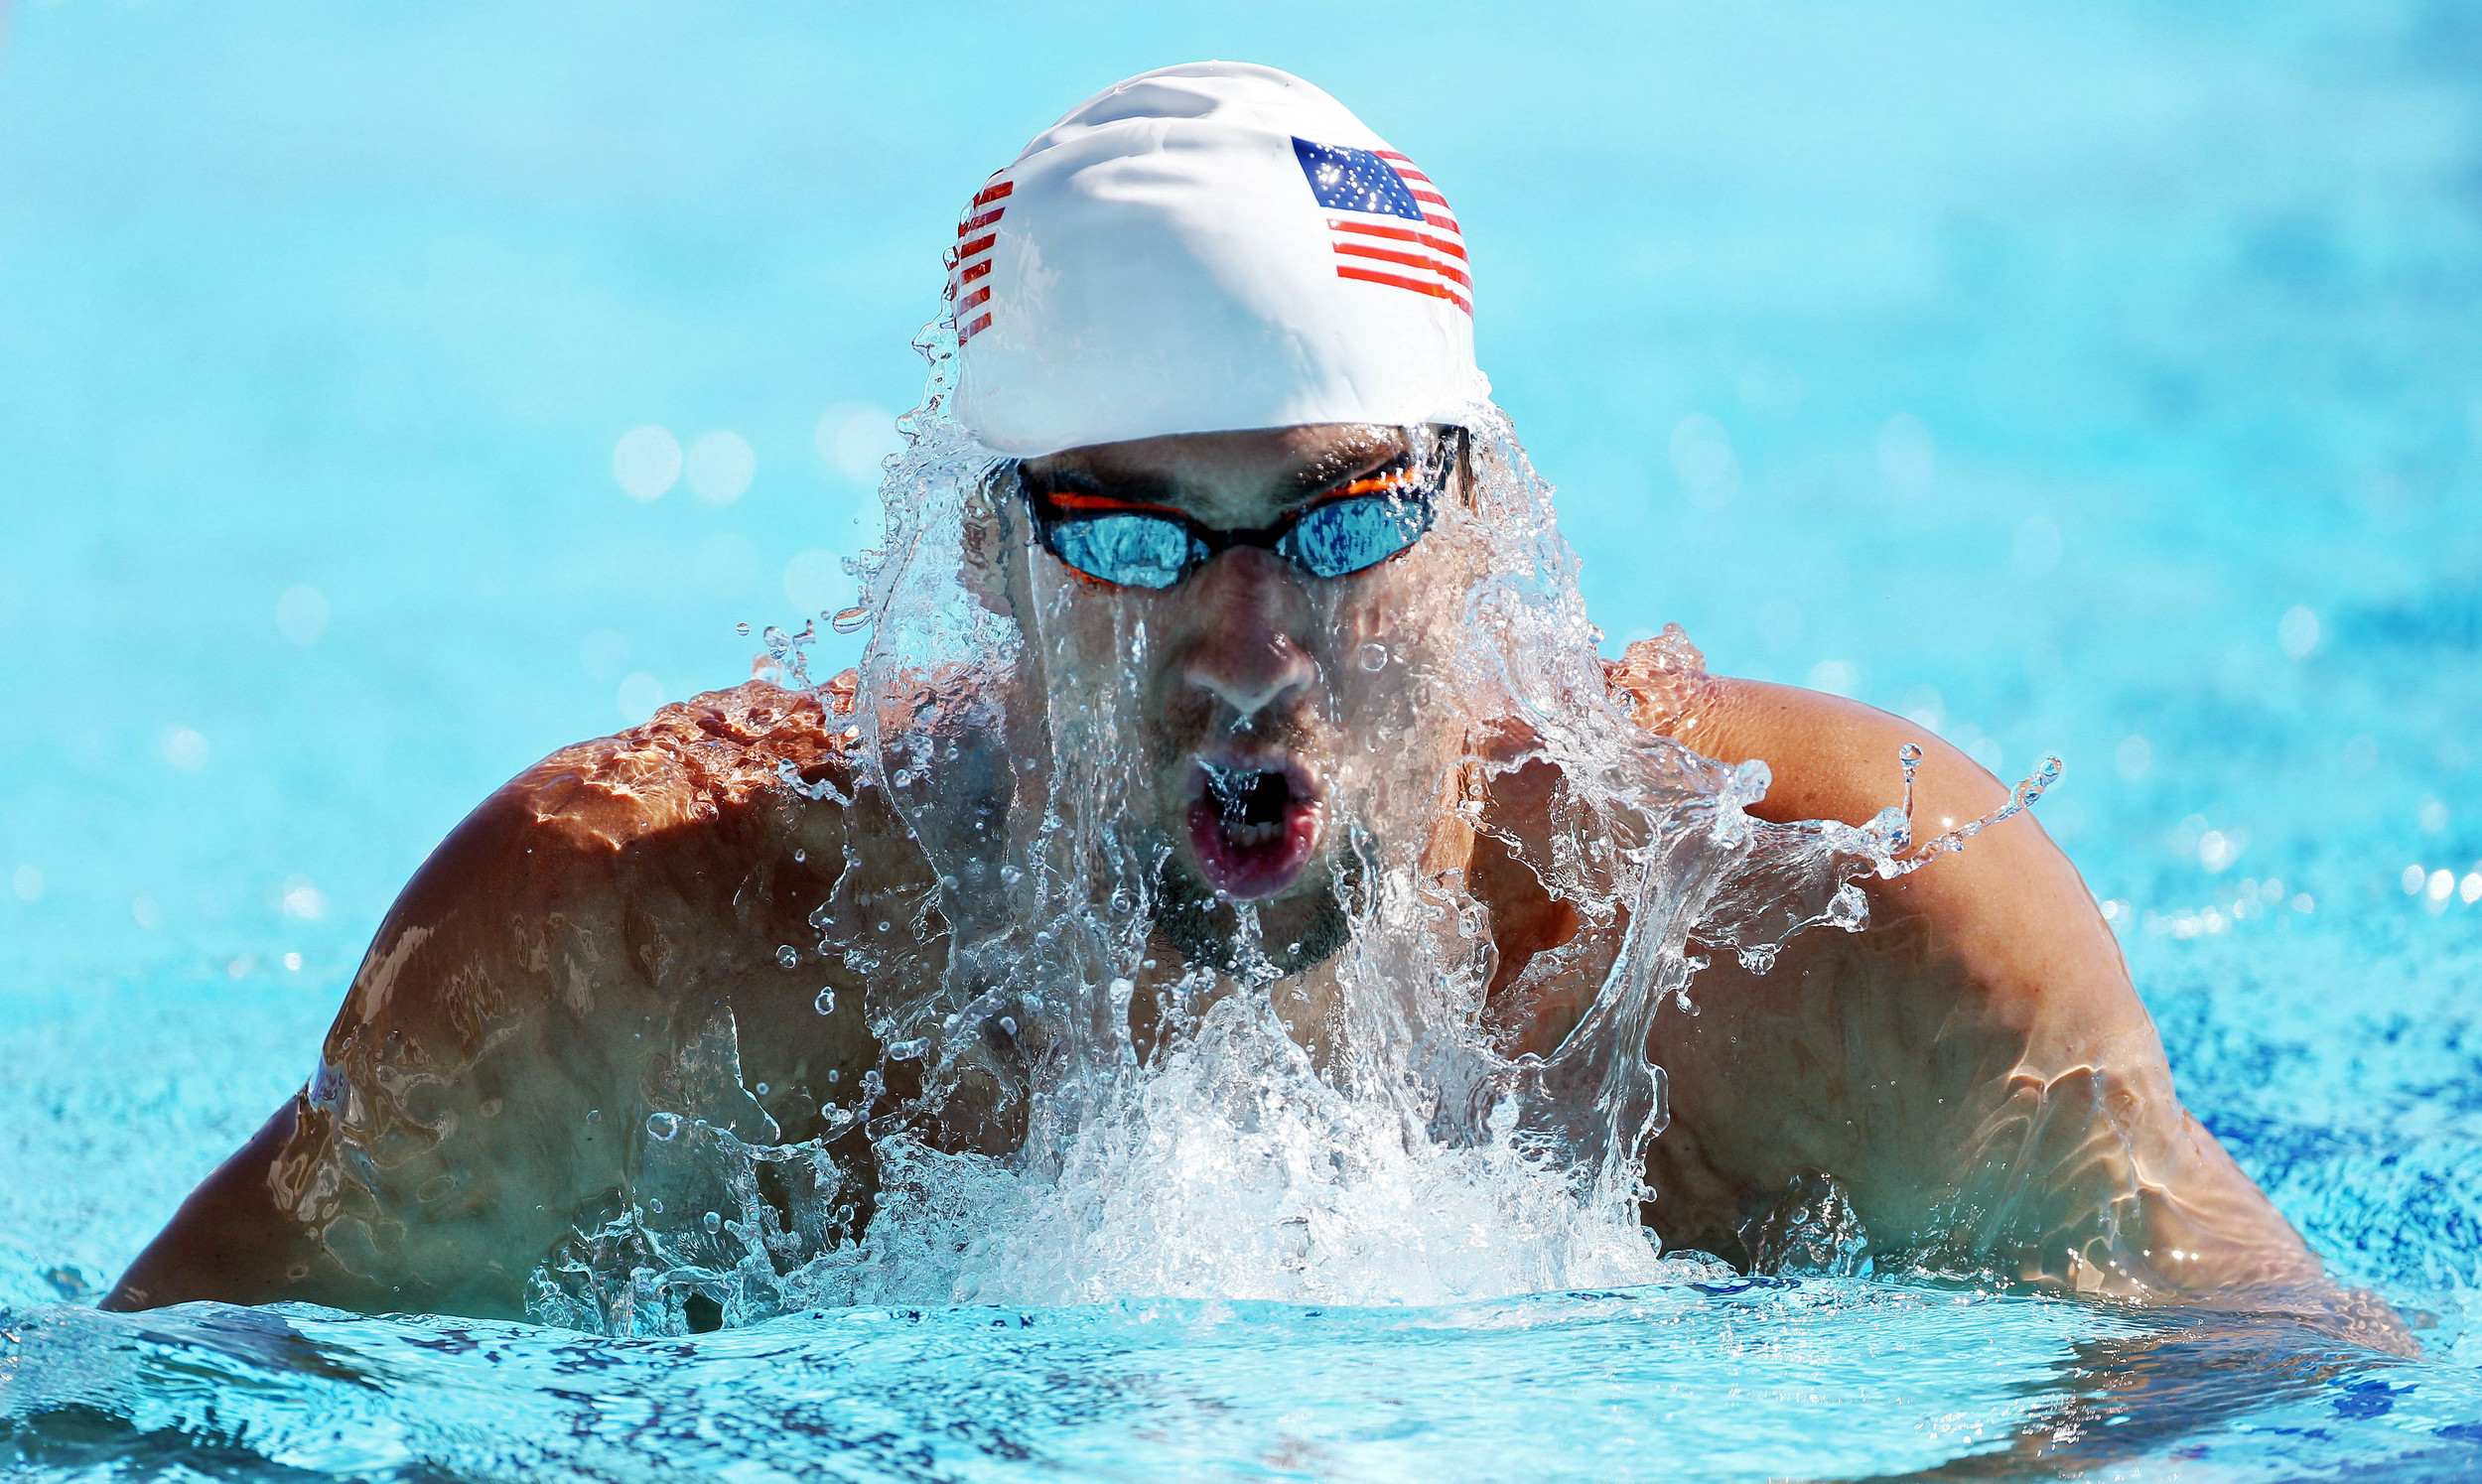 Michael Phelps, perhaps the greatest sportsman to have ever lived, has been living with Attention Deficit Disorder for most of his life. However, this hasn't effected his performances in the pool as he has managed to control his arousal levels for the task at hand. Action Images / Jason O'Brien Livepic